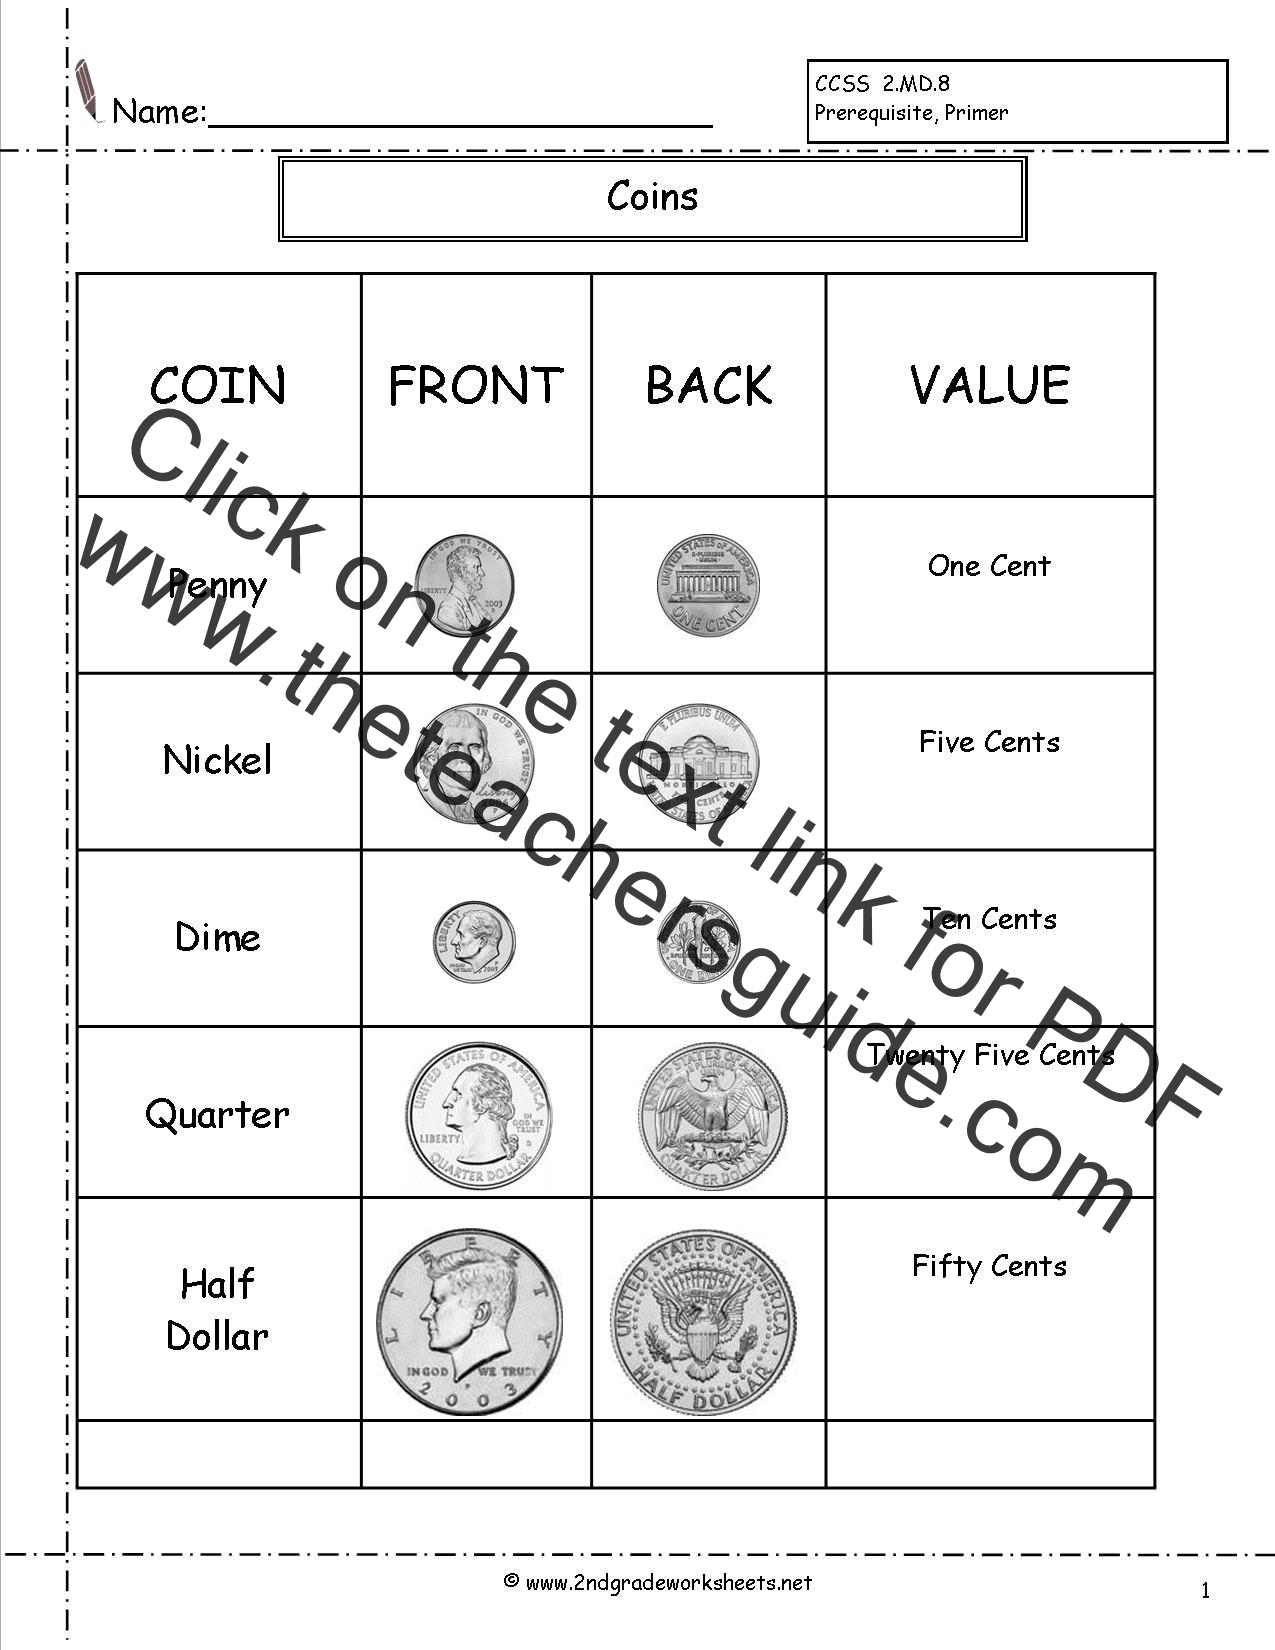 Worksheets Value Of Coins Worksheet counting coins and money worksheets printouts worksheet coin identification values